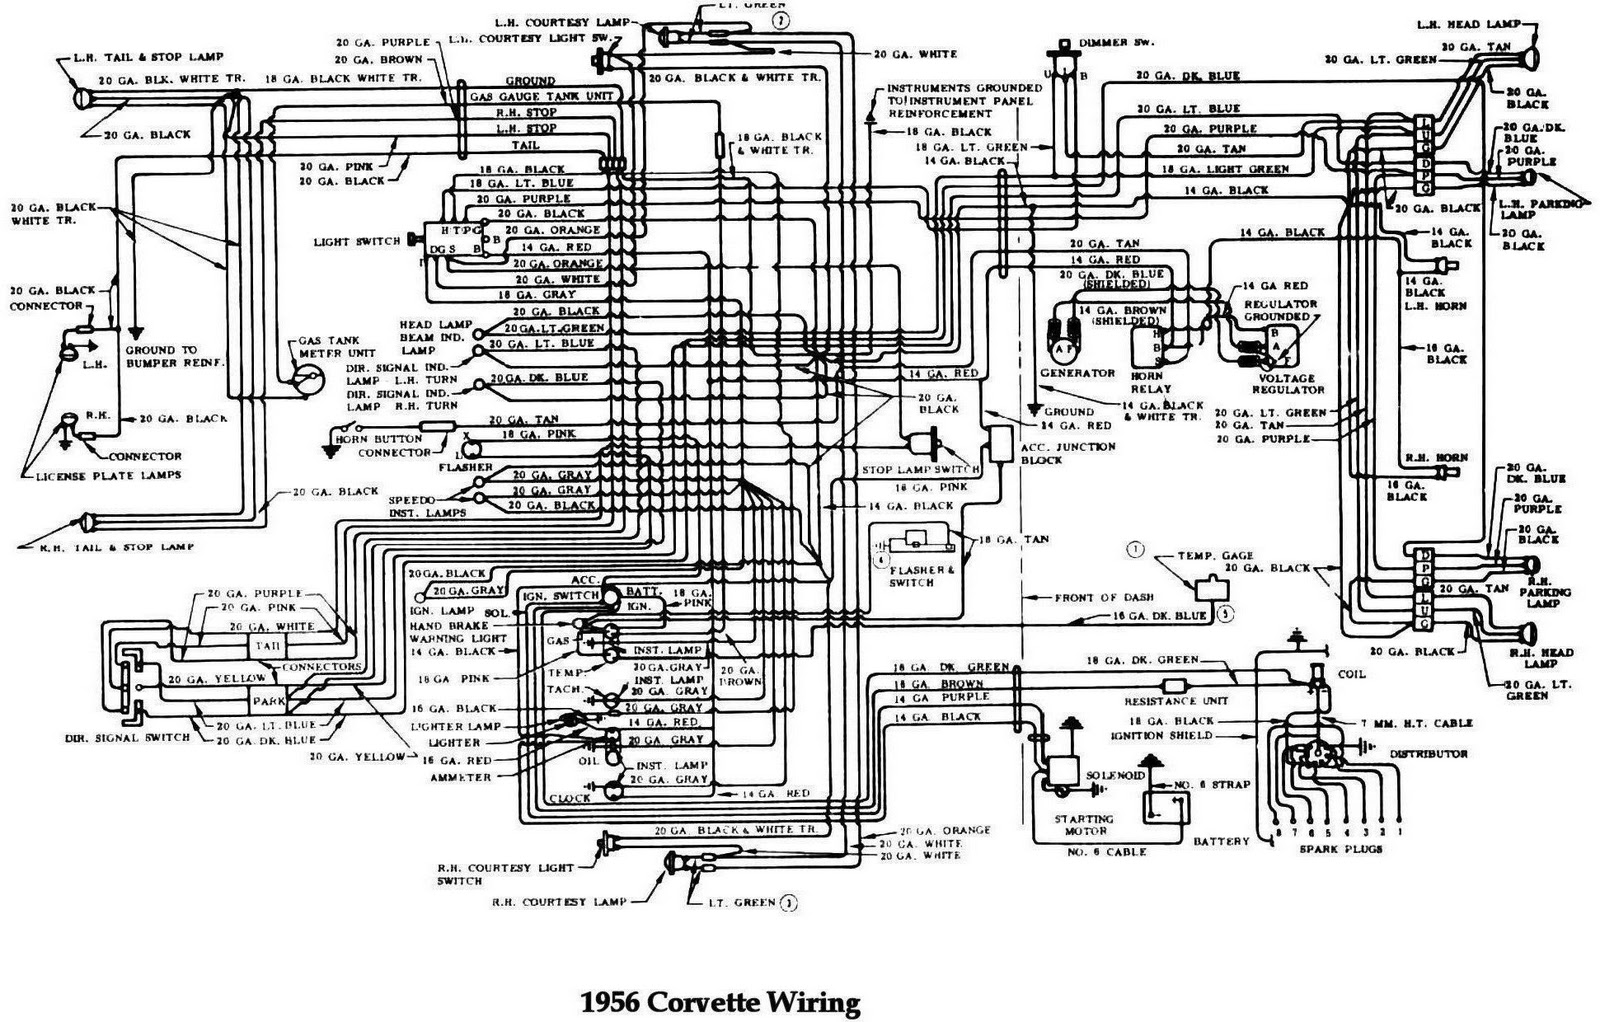 1956 Chevrolet Corvette Wiring Diagram | All about Wiring Diagrams